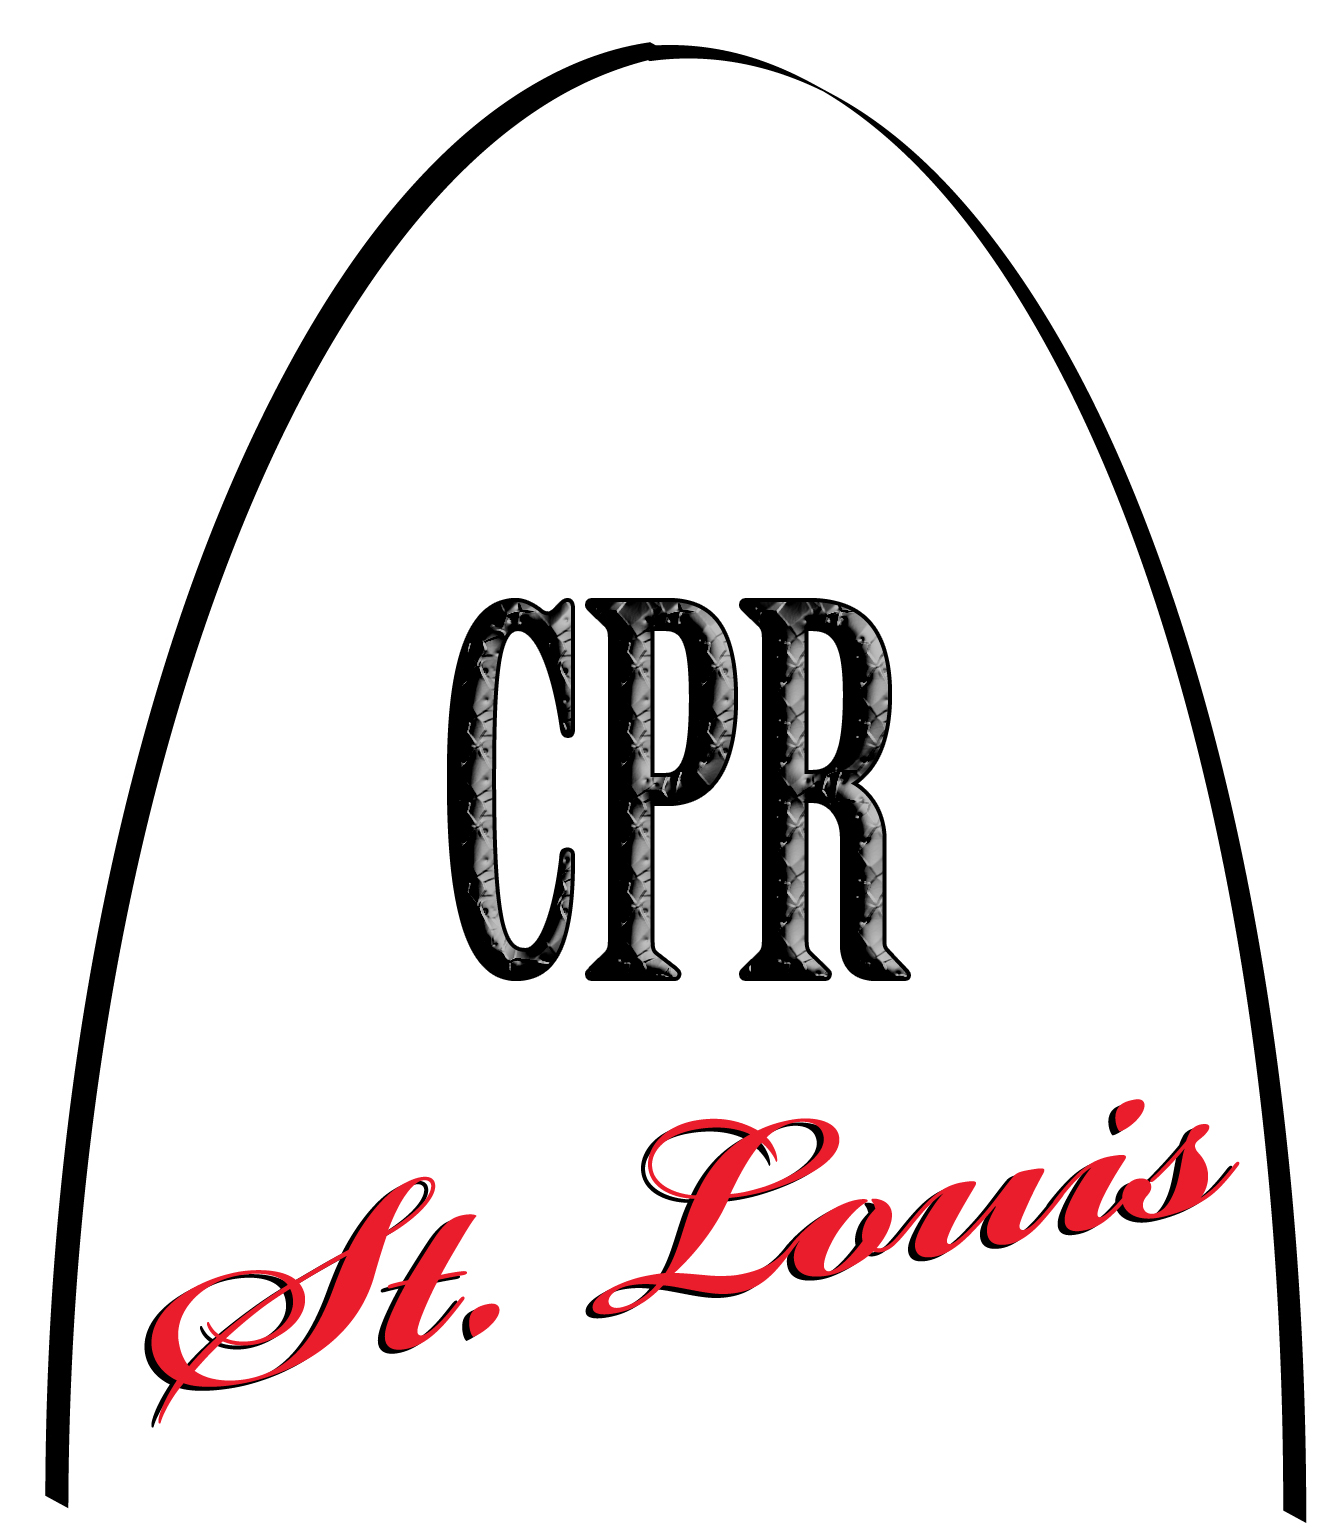 Cpr st louis about us cpr st louis xflitez Choice Image